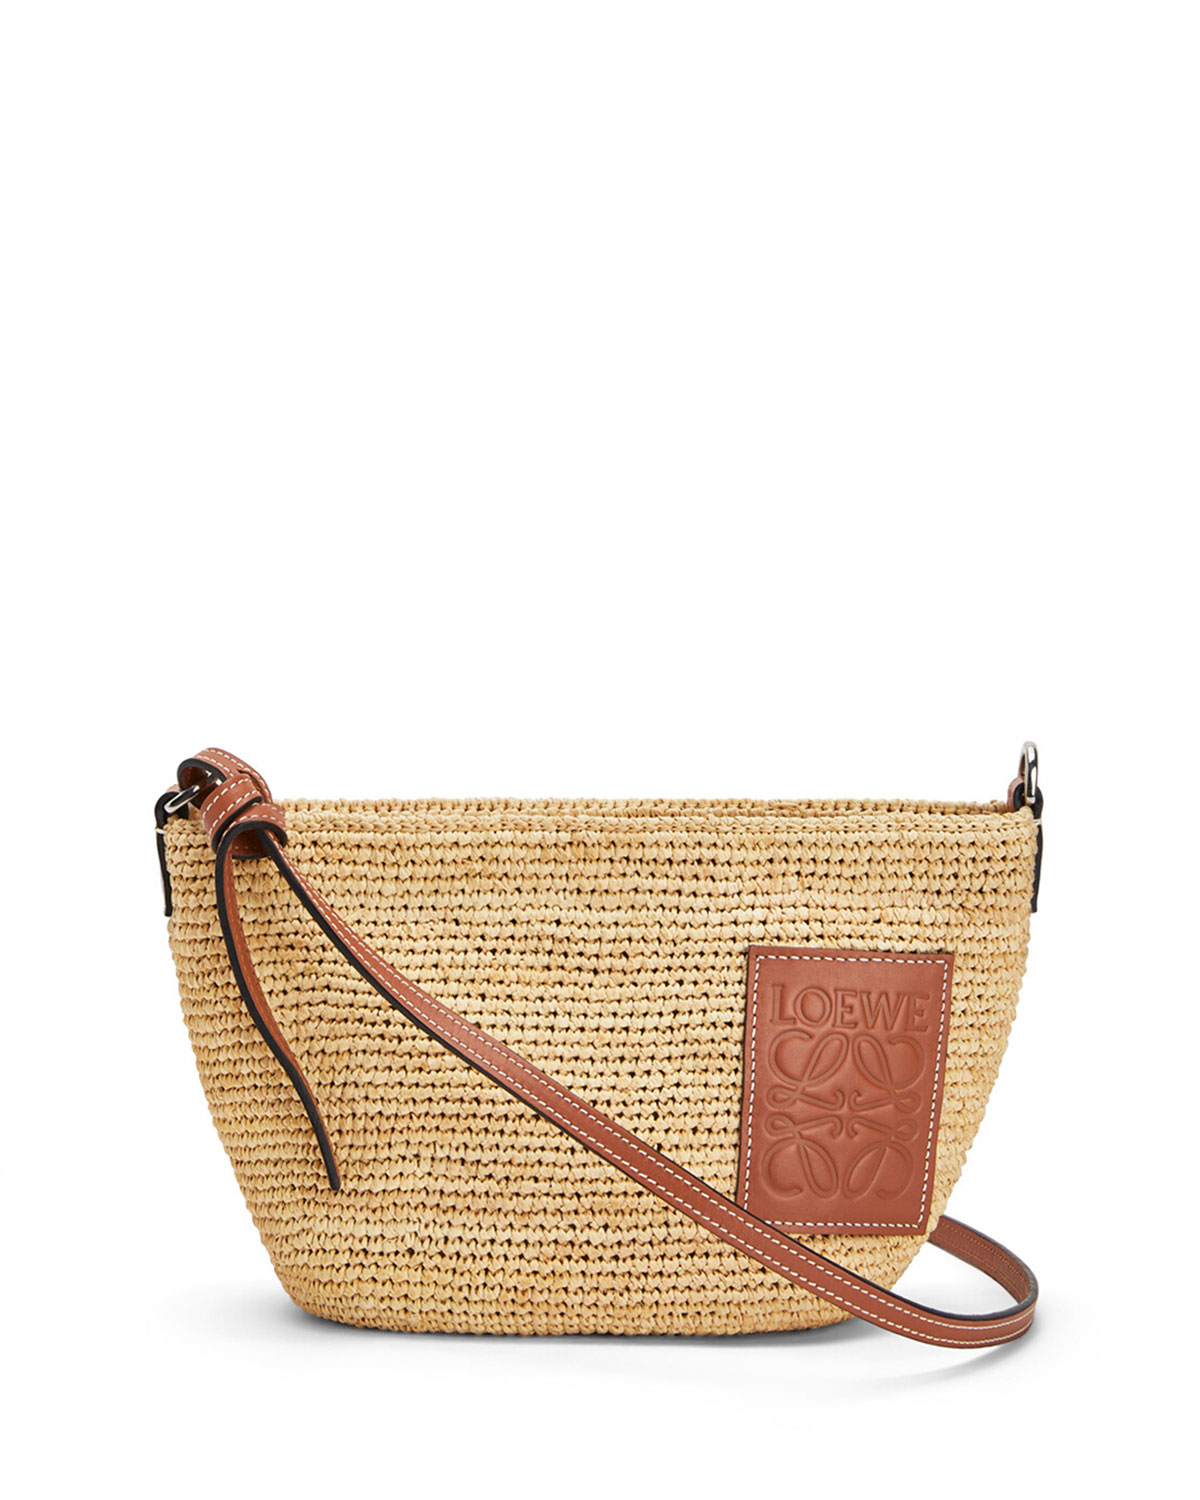 Loewe x Paula's Ibiza Raffia Medium Crossbody Bag